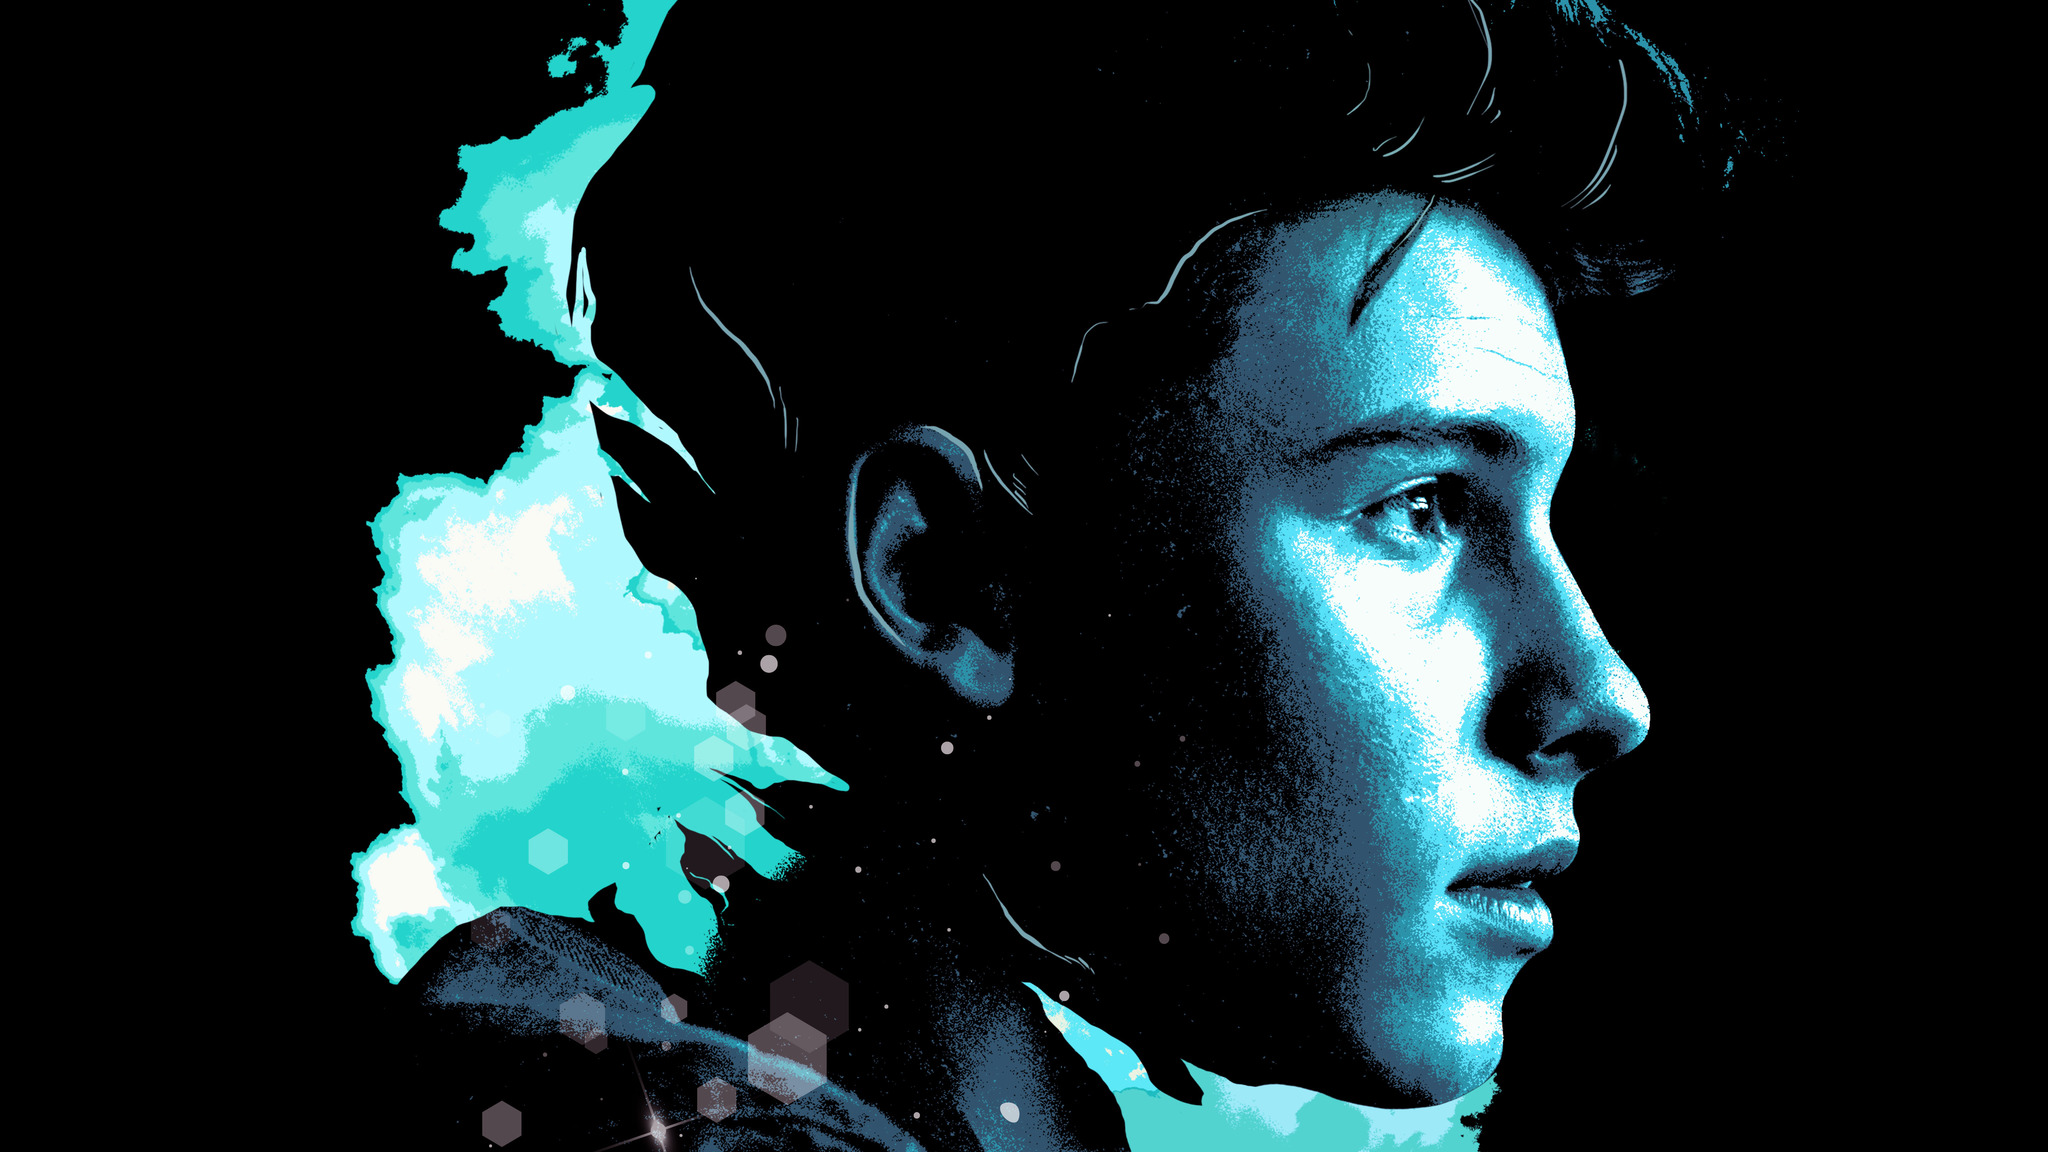 8 Shawn Mendes HD Wallpapers Background Images 2048x1152